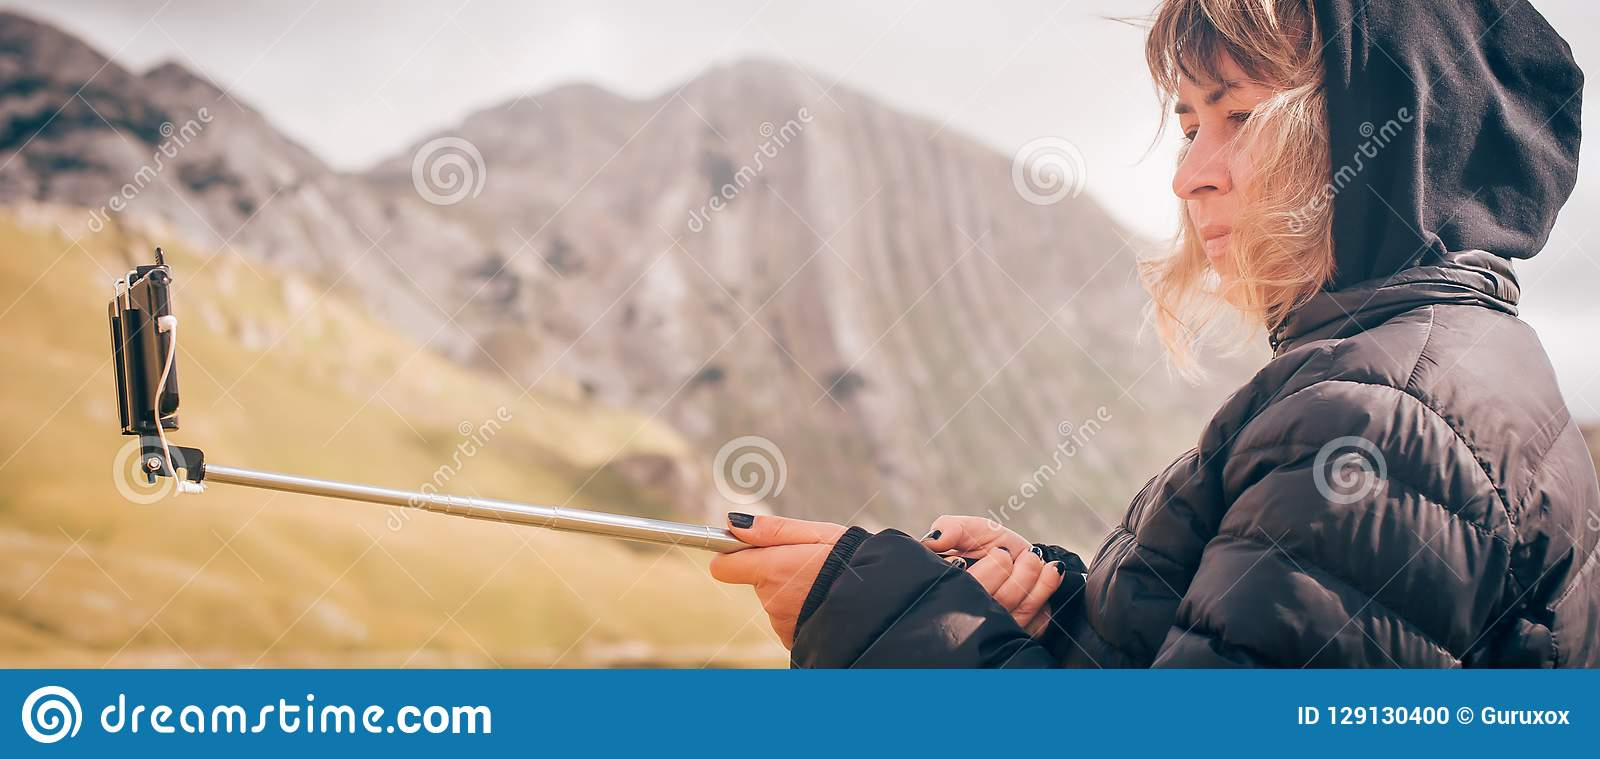 Woman taking panoramic picture of mountain landscape. Selfie photo stick